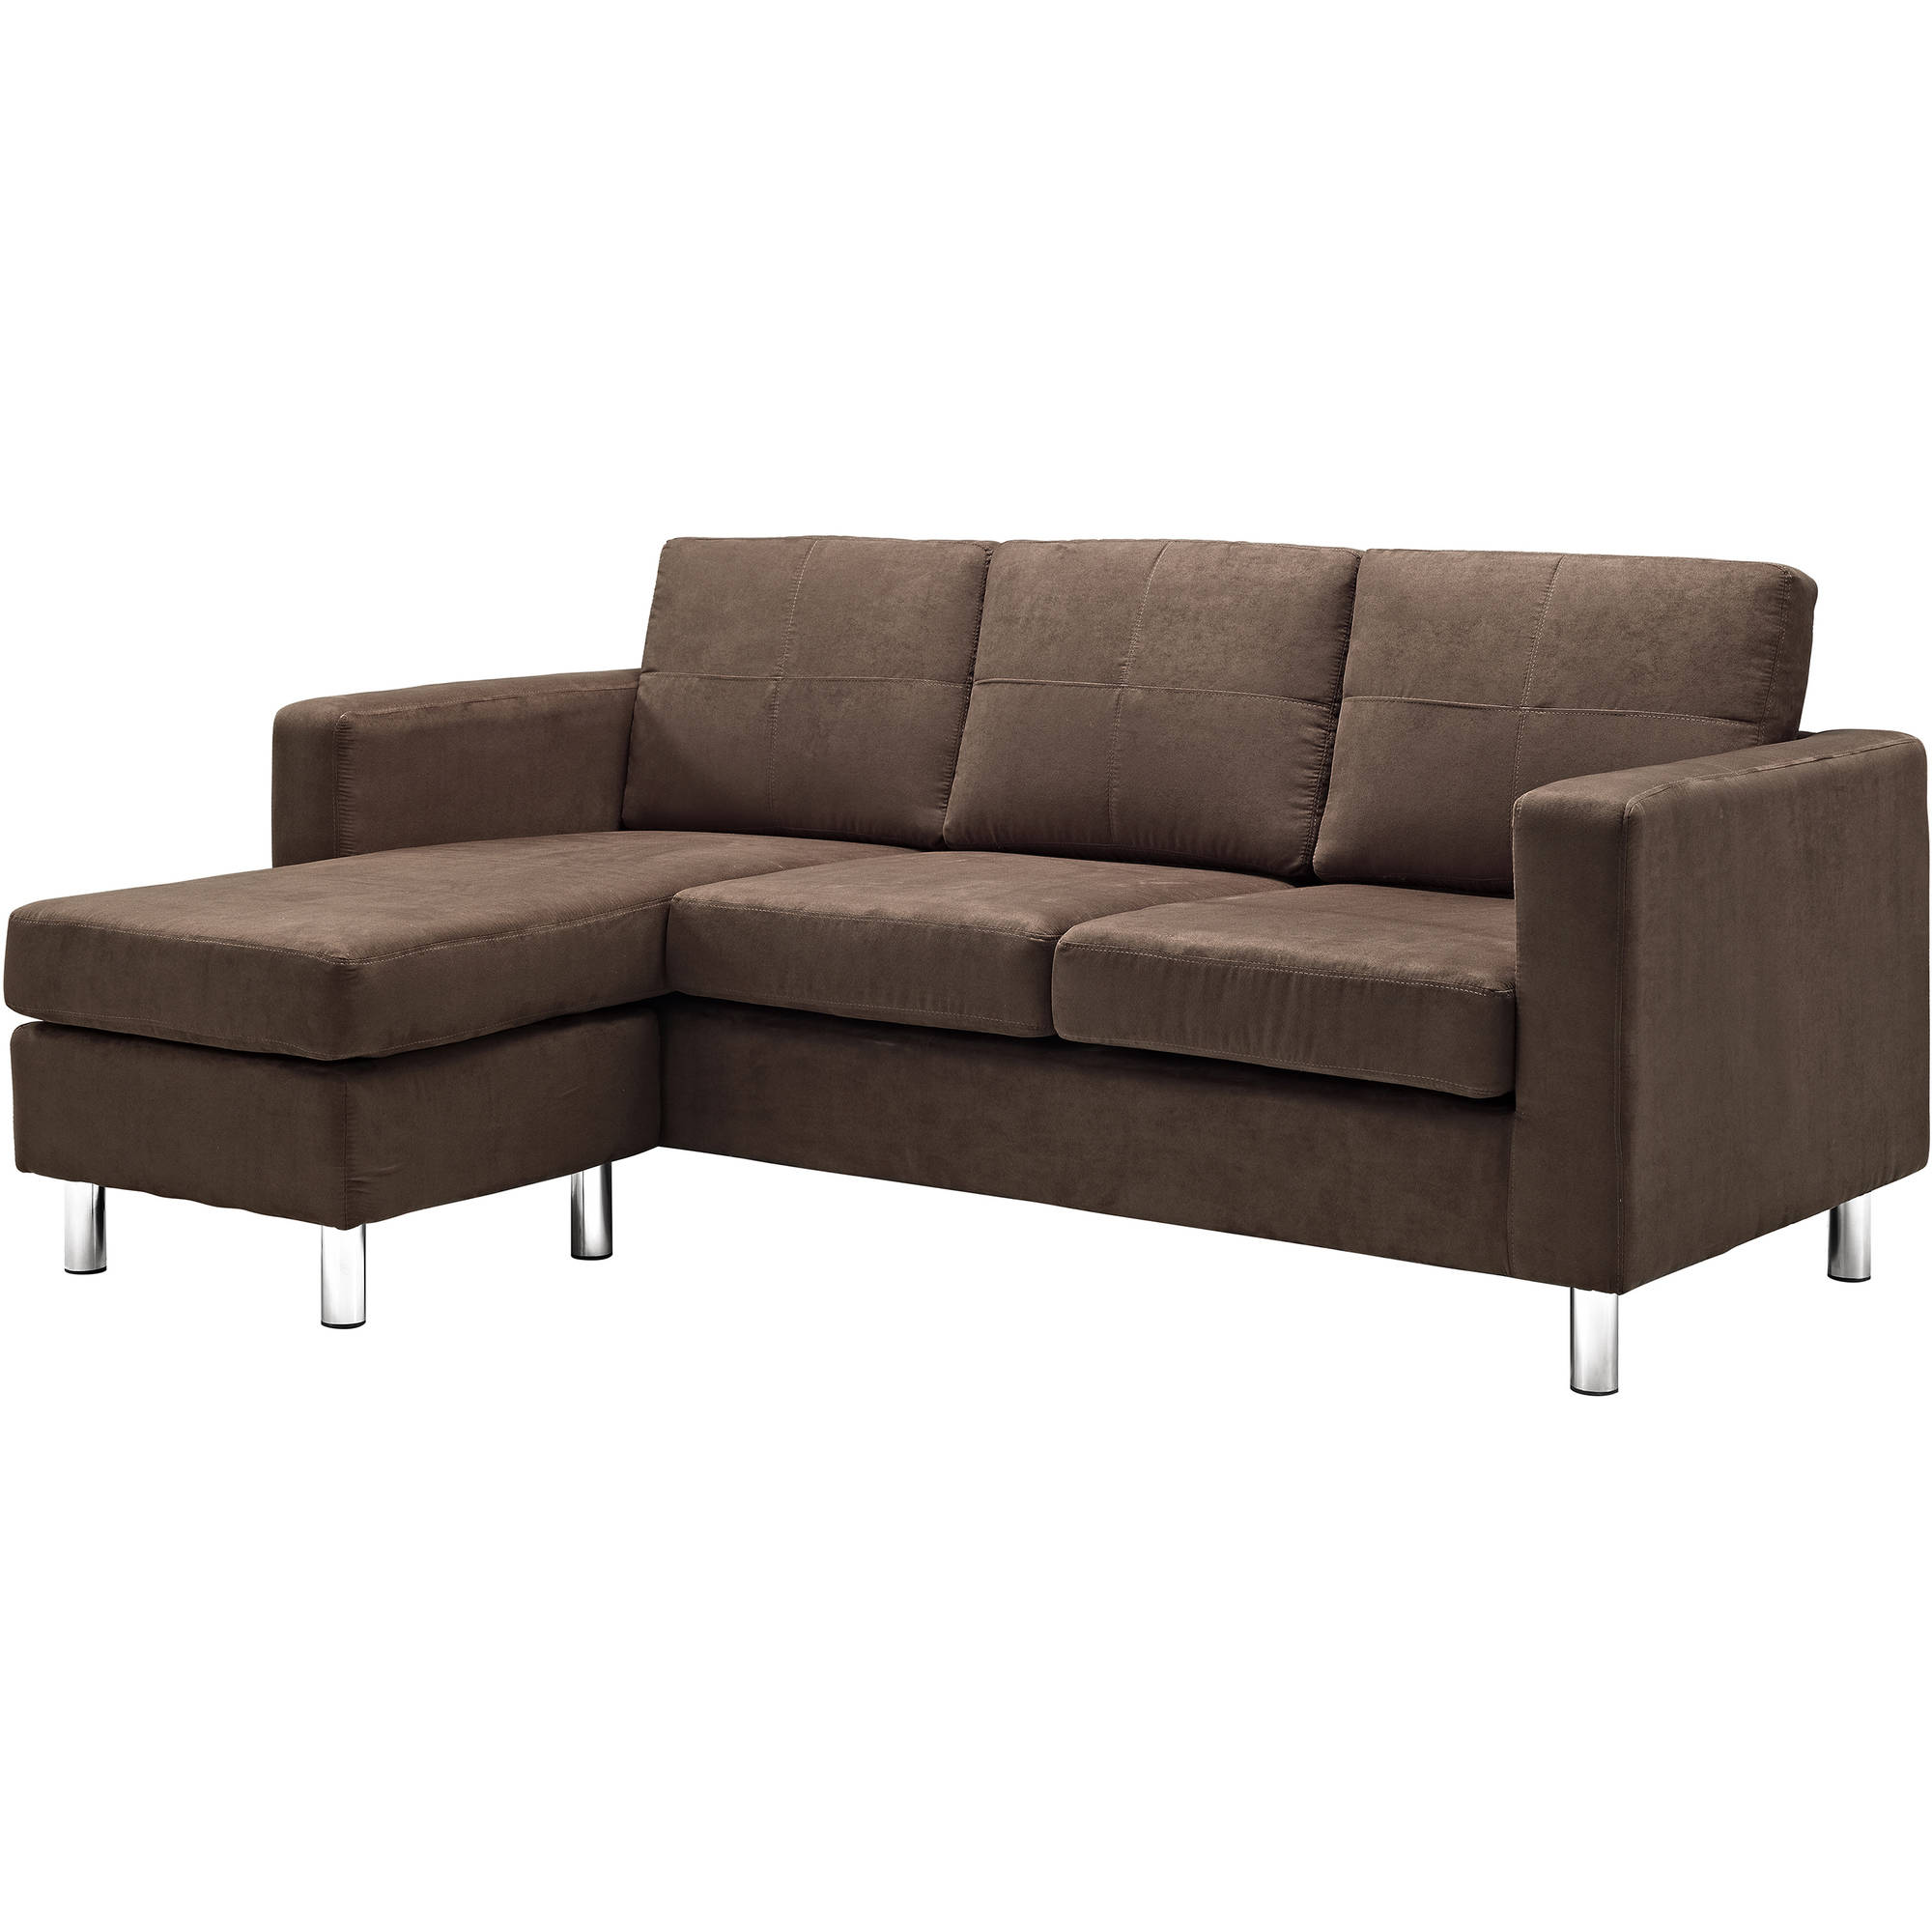 Kebo Futon Sofa Bed Multiple Colors Dorel Living Small Es Configurable Sectional